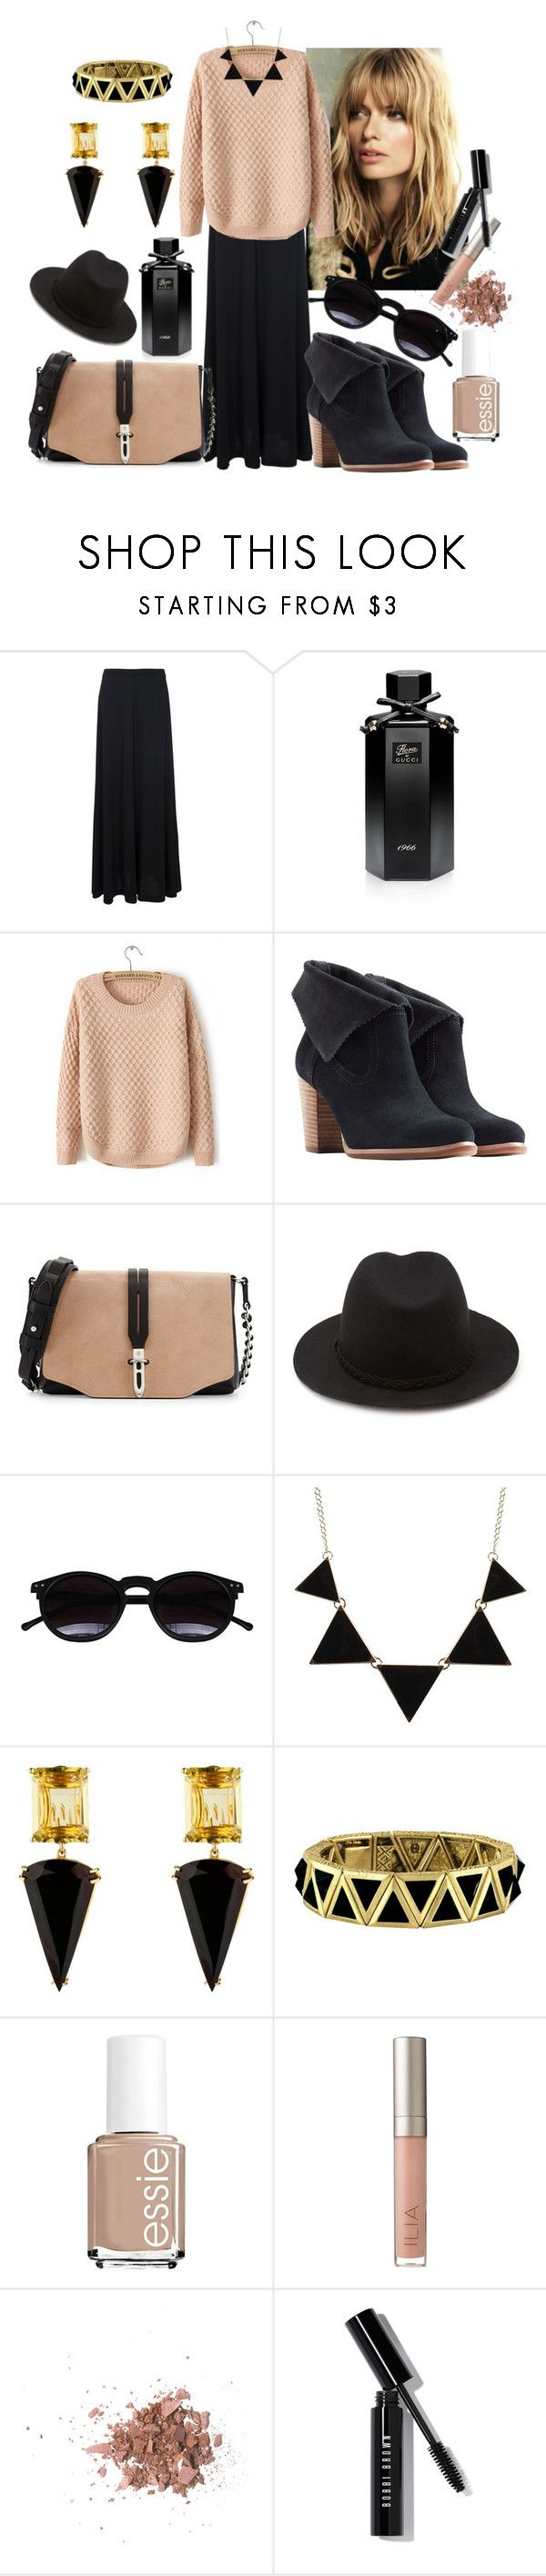 """""""Юбка+свитер"""" by elona-makavelli ❤ liked on Polyvore featuring Mode, French Connection, Gucci, UGG Australia, rag & bone, Forever 21, Chicnova Fashion, CO, House of Harlow 1960 und Essie"""